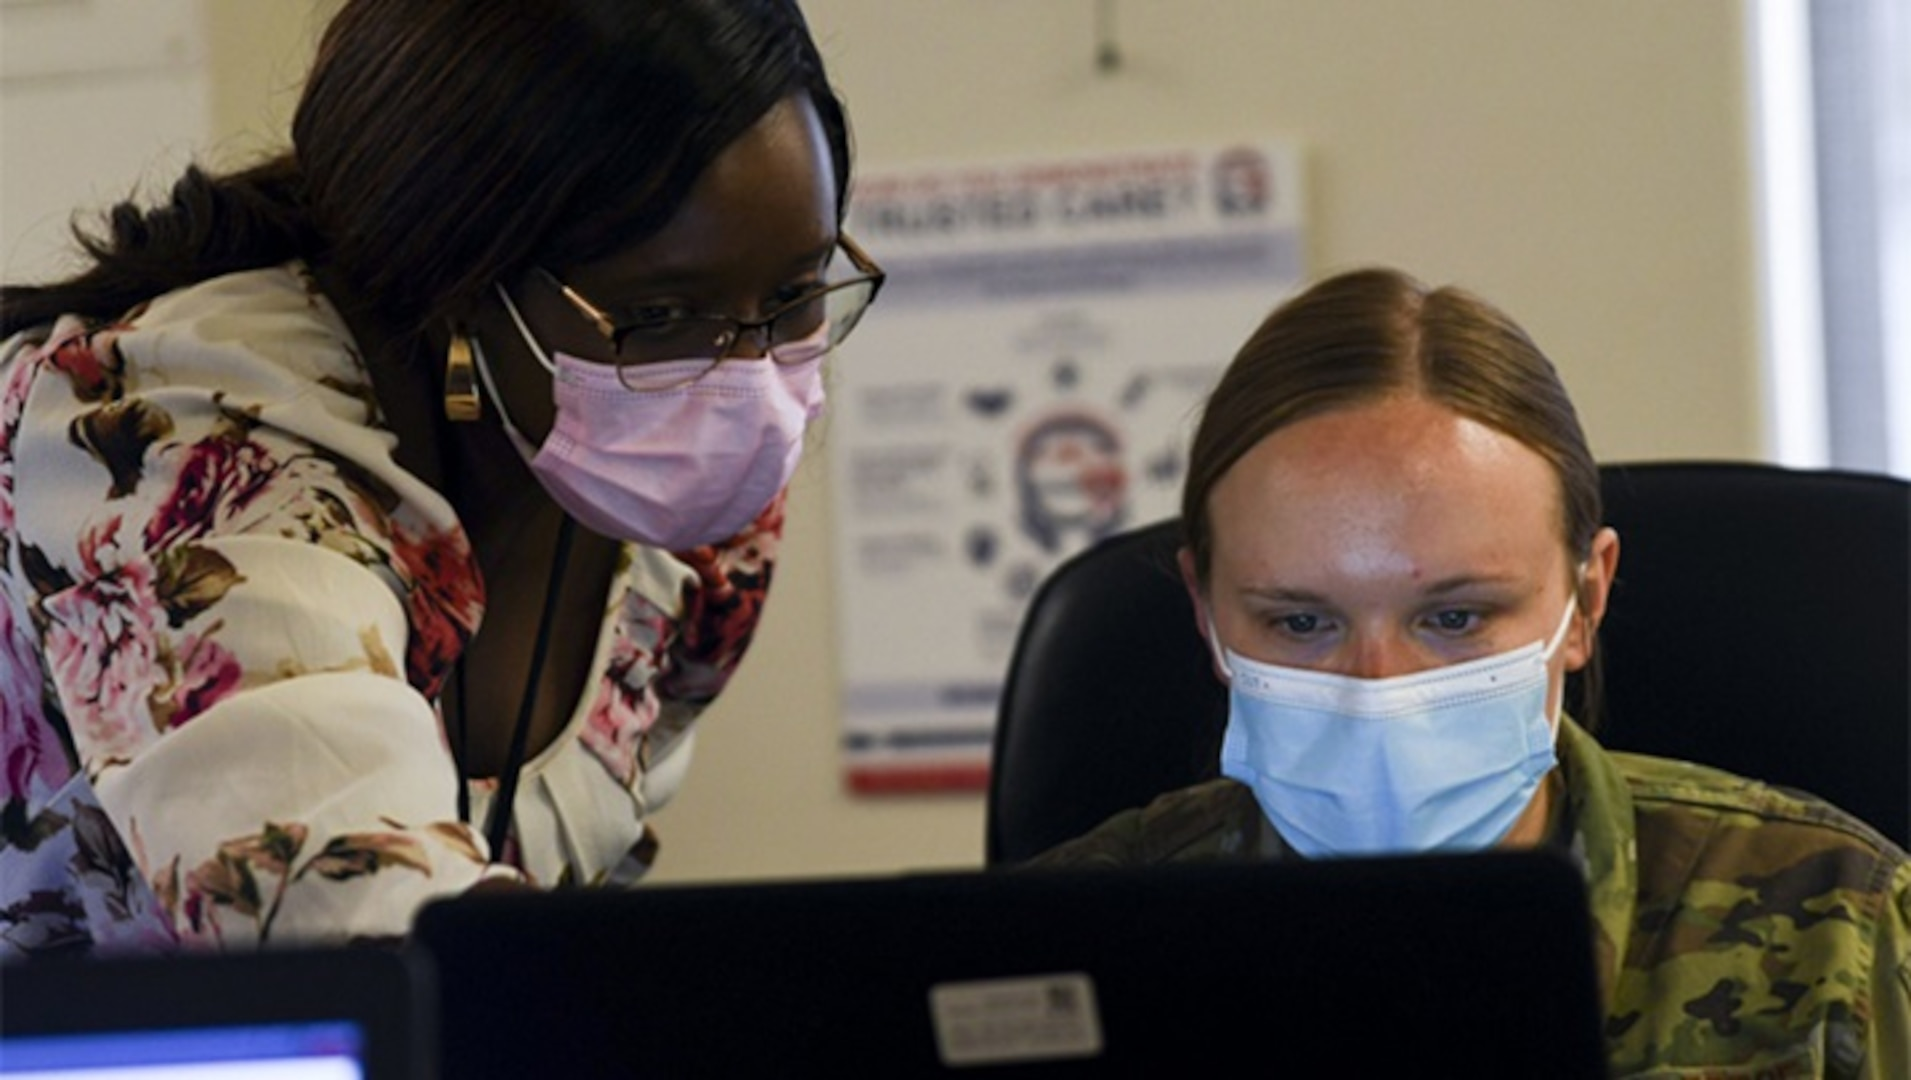 Military Health System MHS GENESIS trainer, gives instruction to Air Force Airman